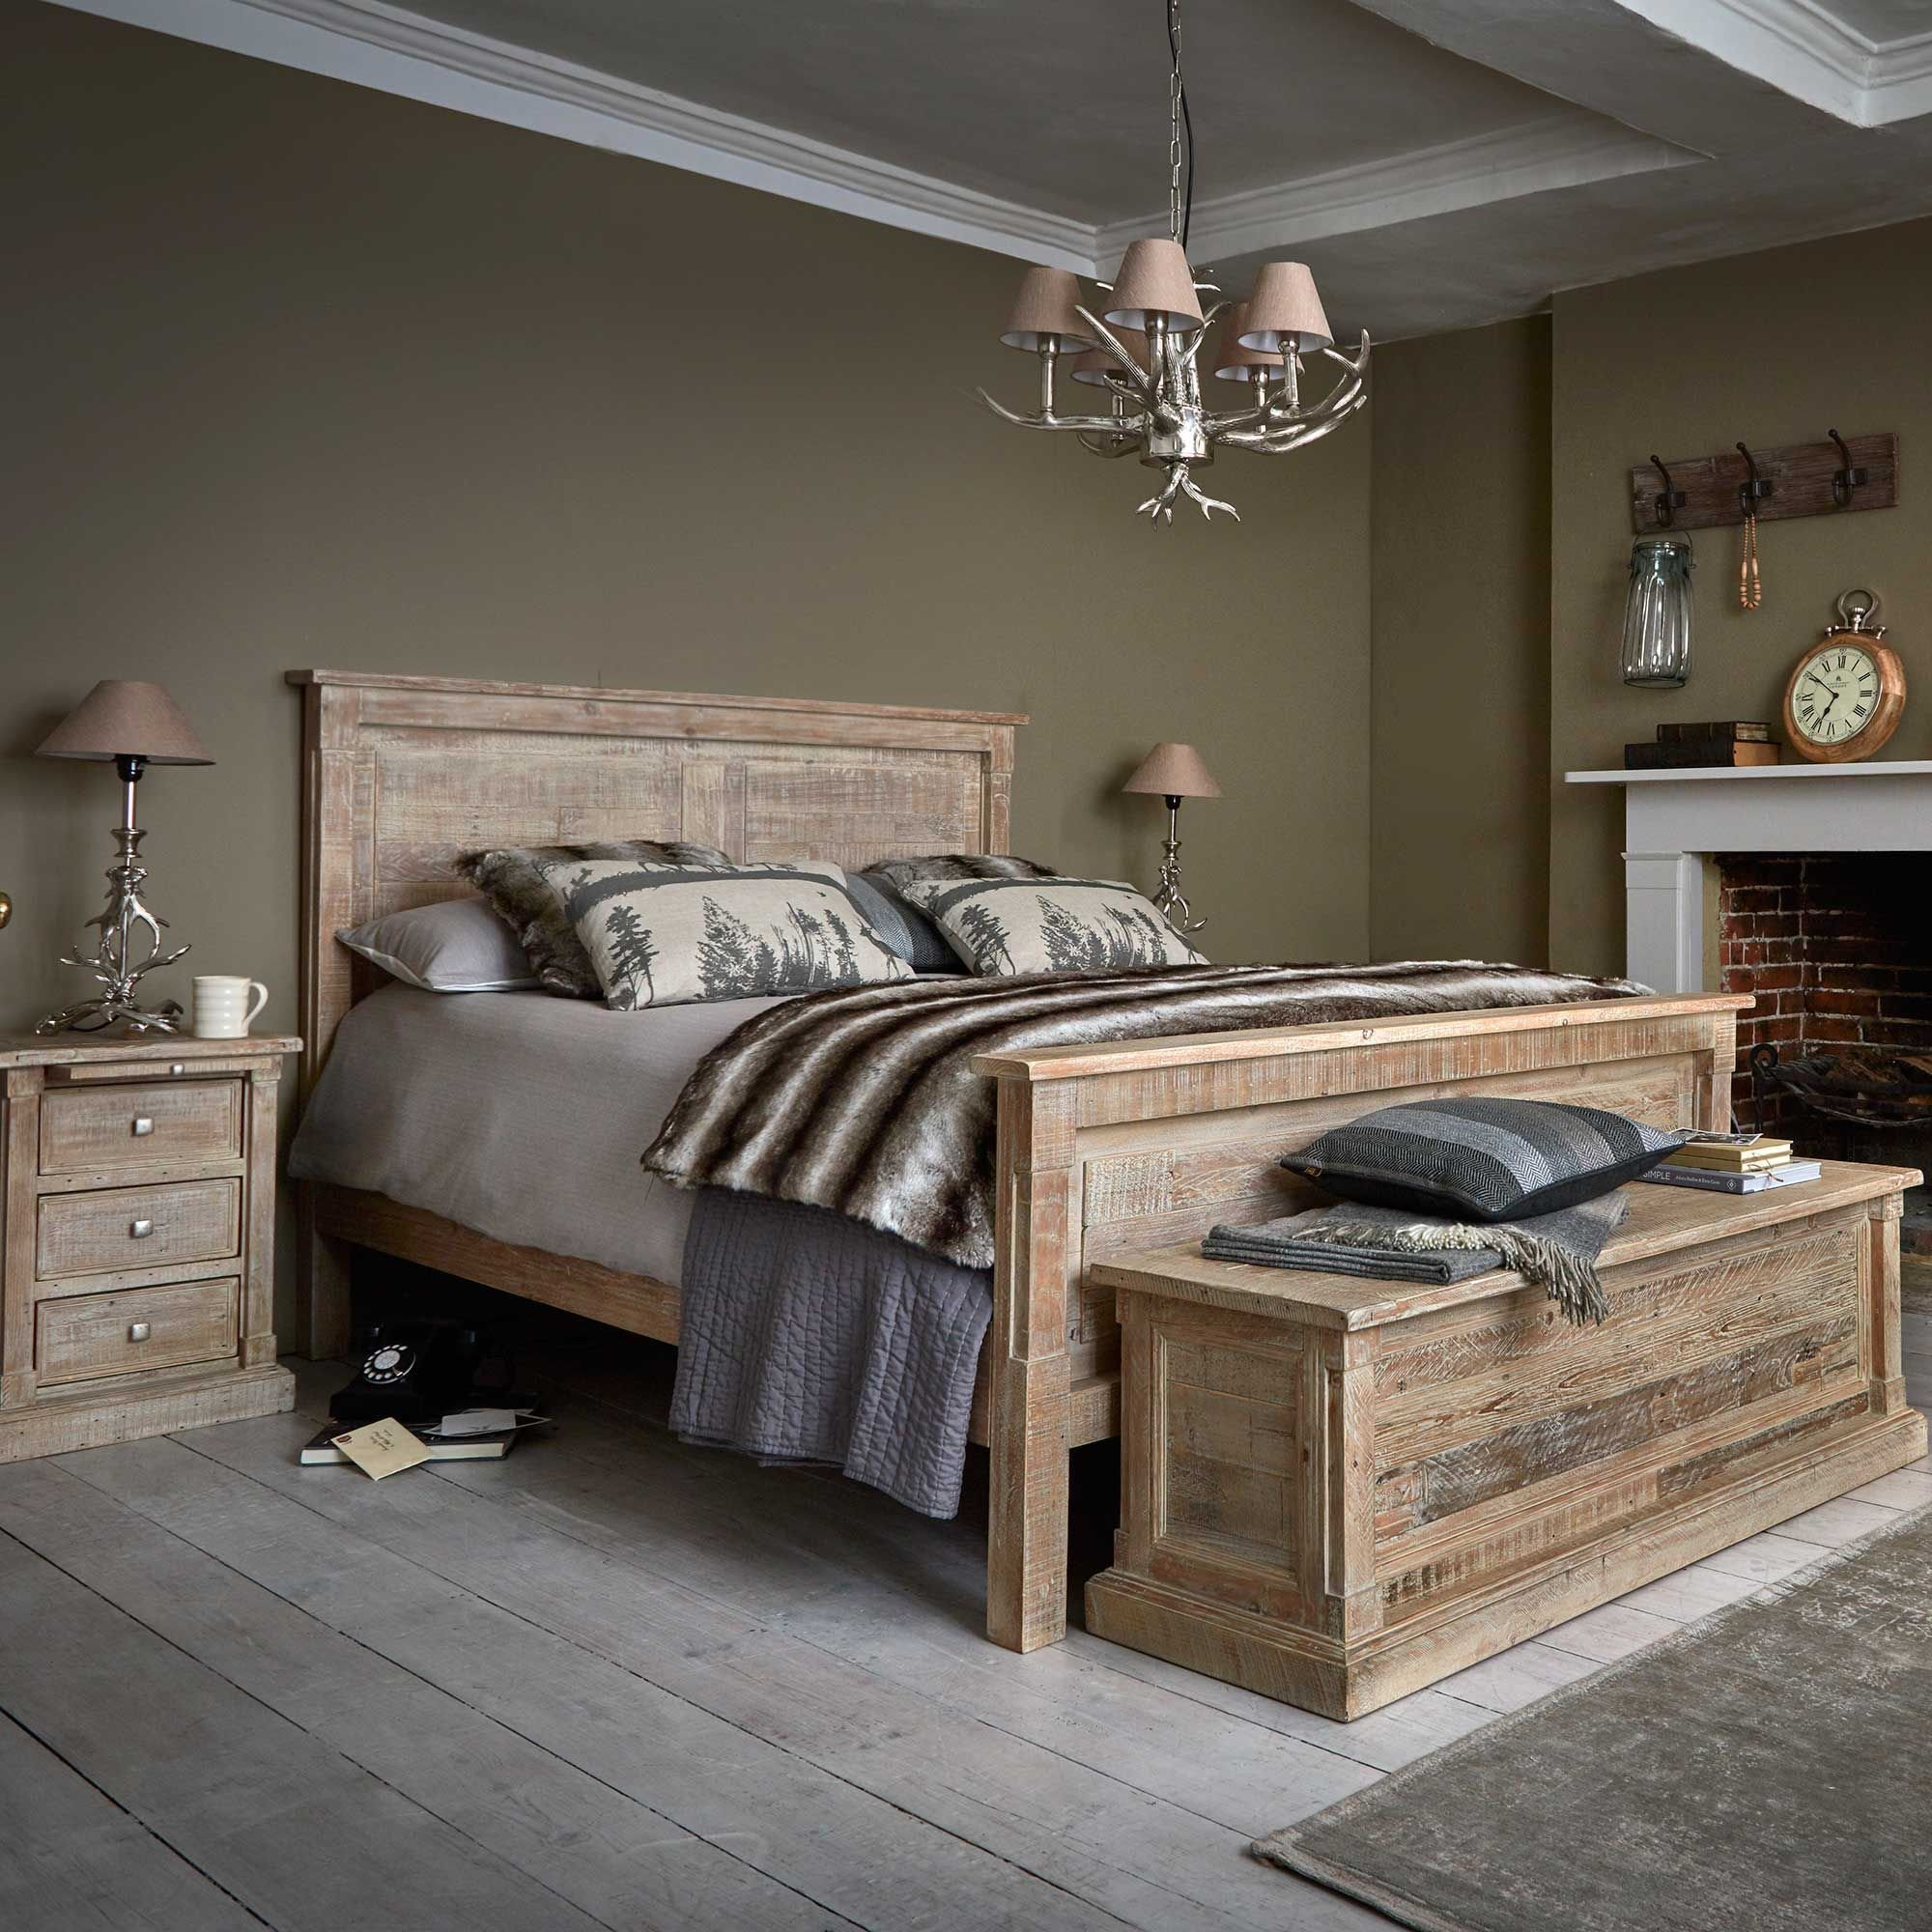 Best The Austen Bed Frame Is Made From Reclaimed Wood With A With Pictures